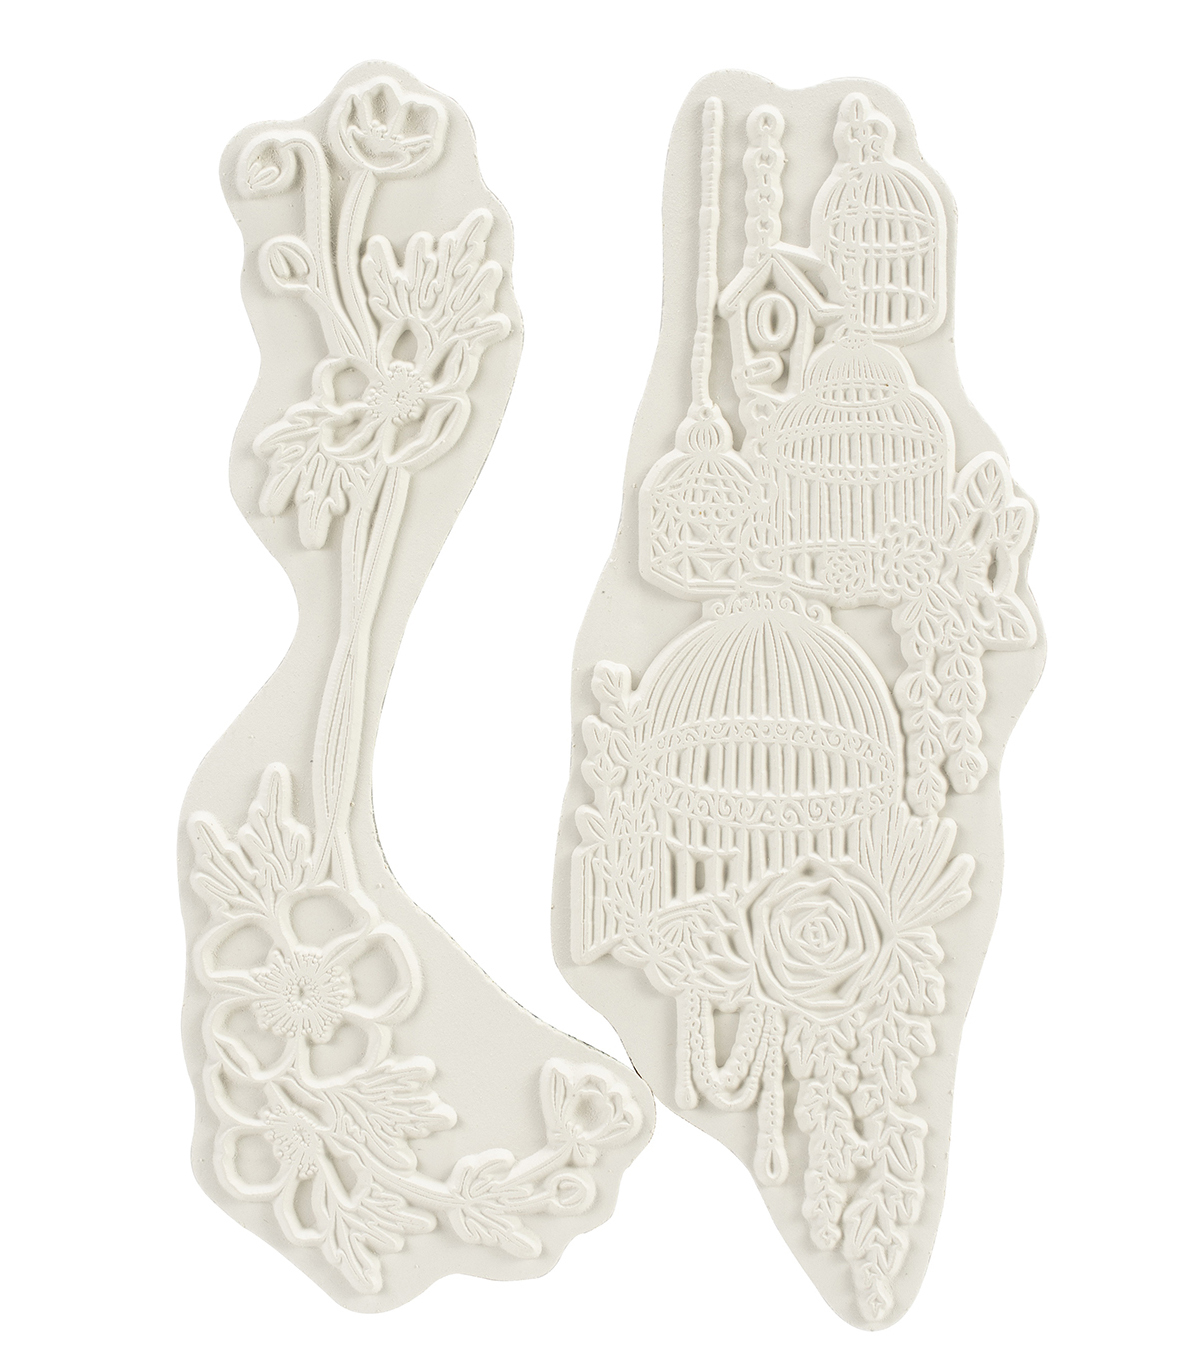 Carabelle Studio Cling Stamp A6 By Sultane-French Flowers